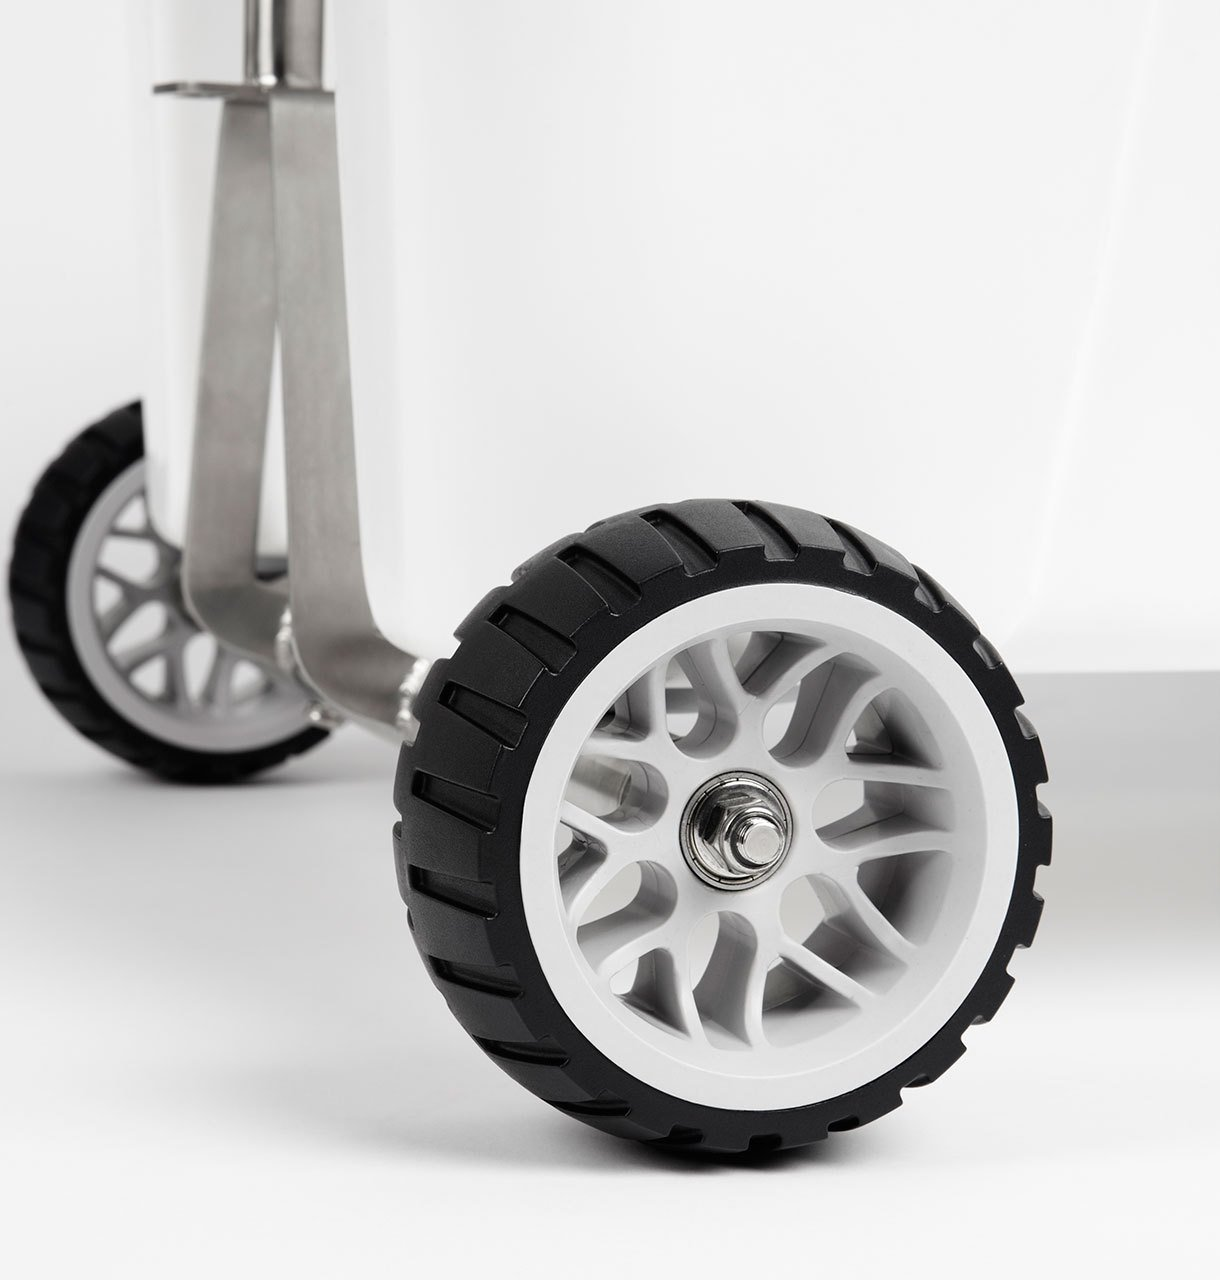 Badger Wheels - Single Axle for Yeti Tundra 35-160 by Badger Wheels (Image #6)